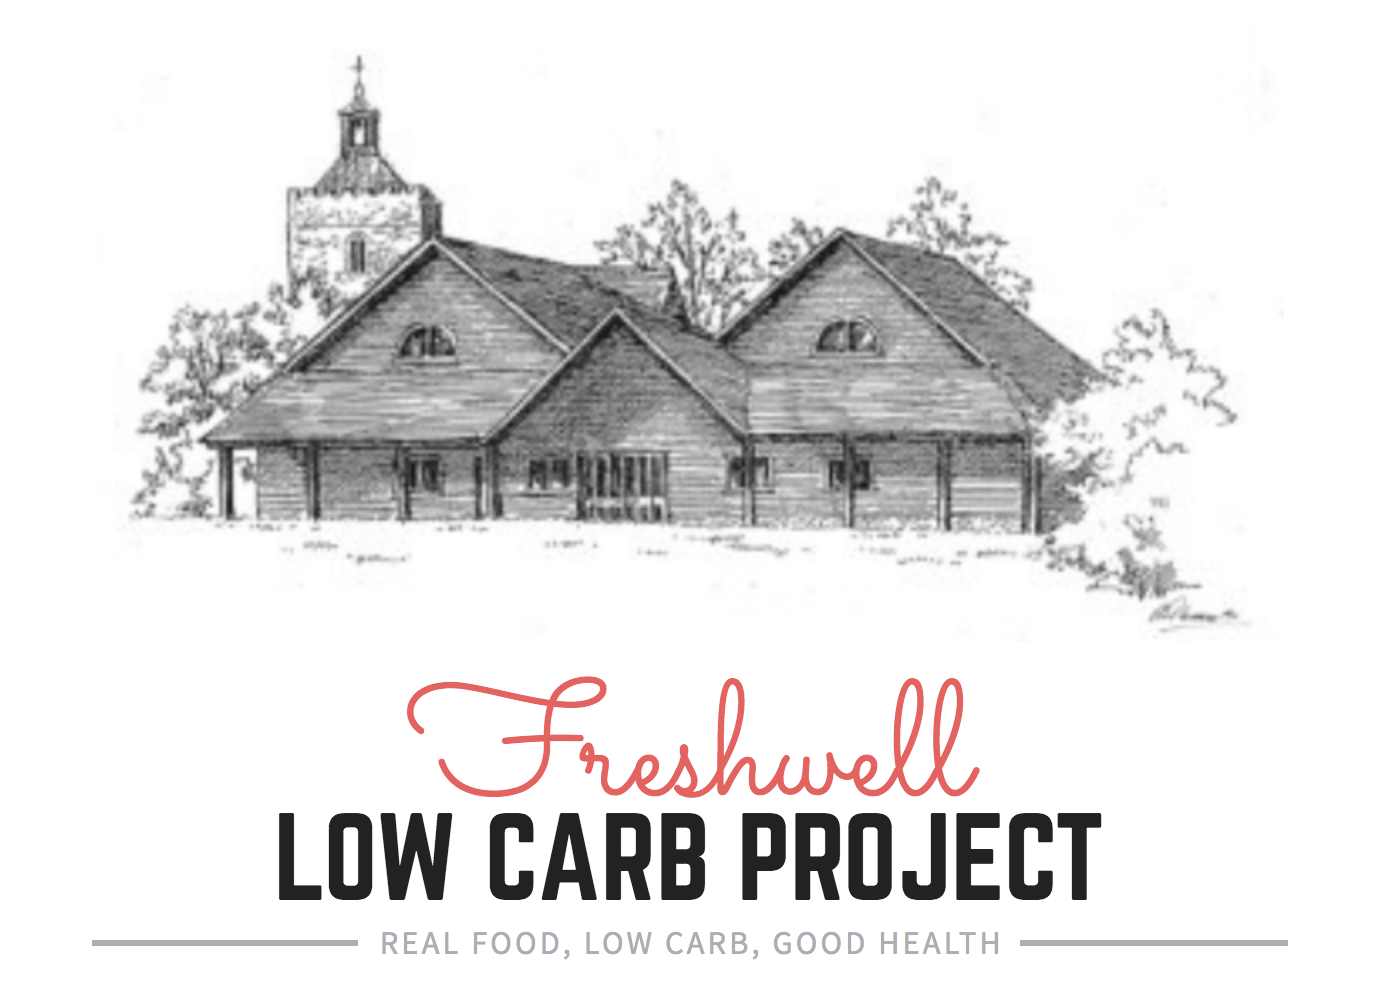 low carb logo